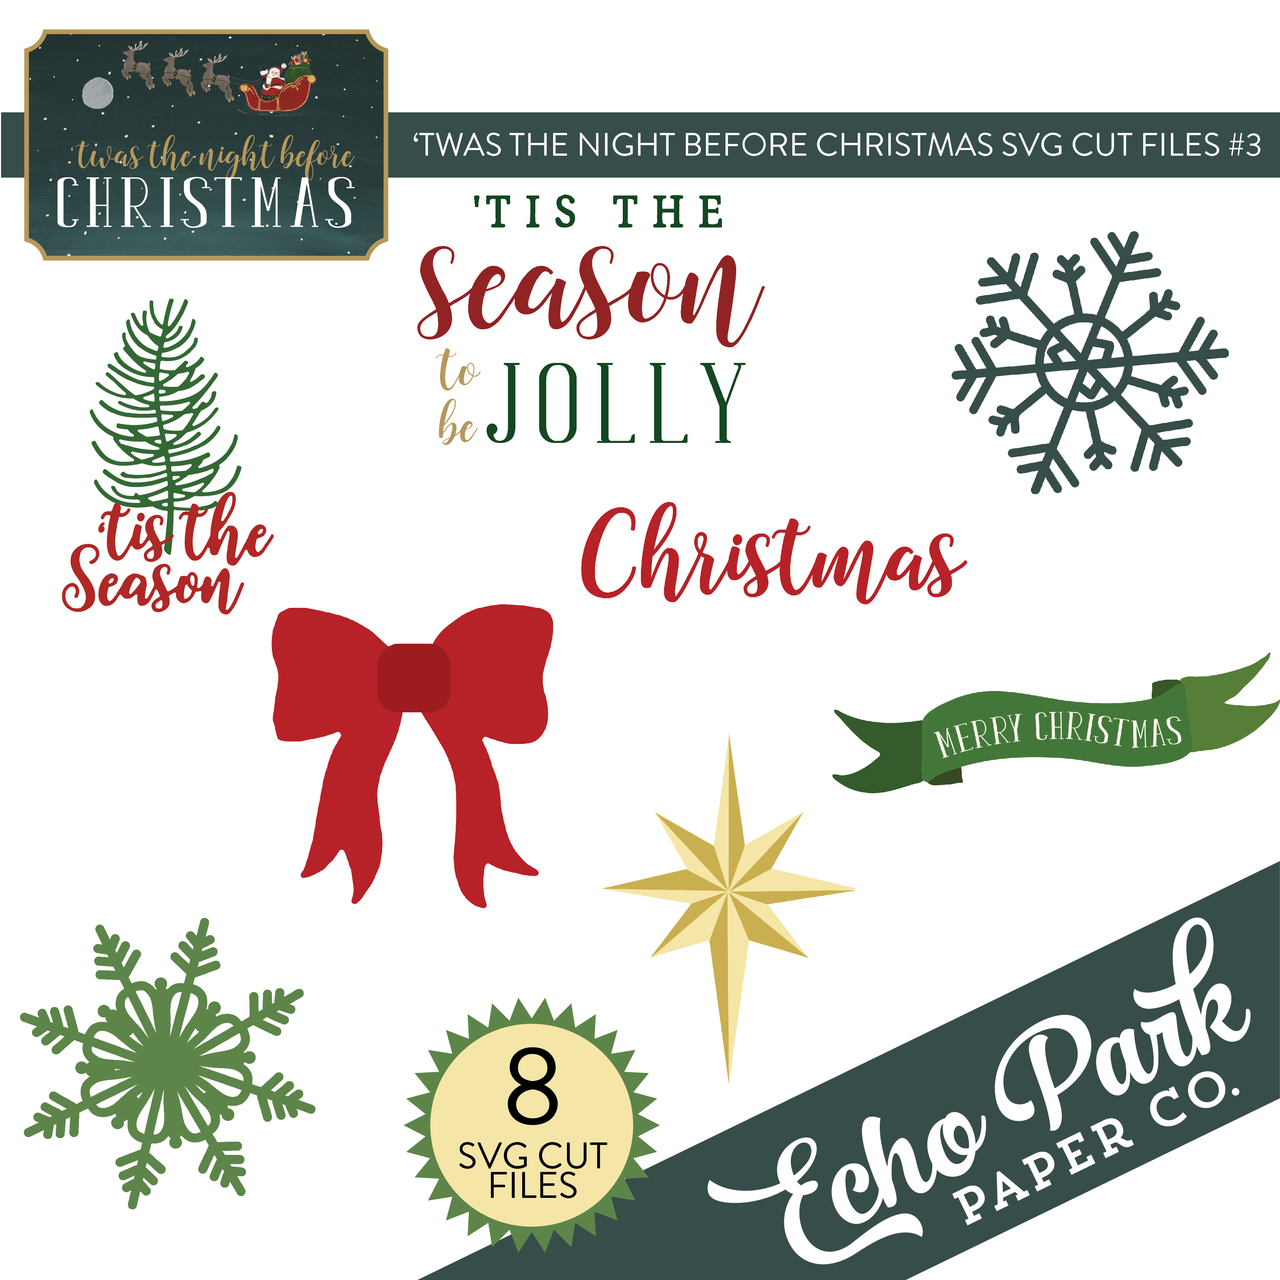 'Twas The Night Before Christmas SVG Cut Files #3